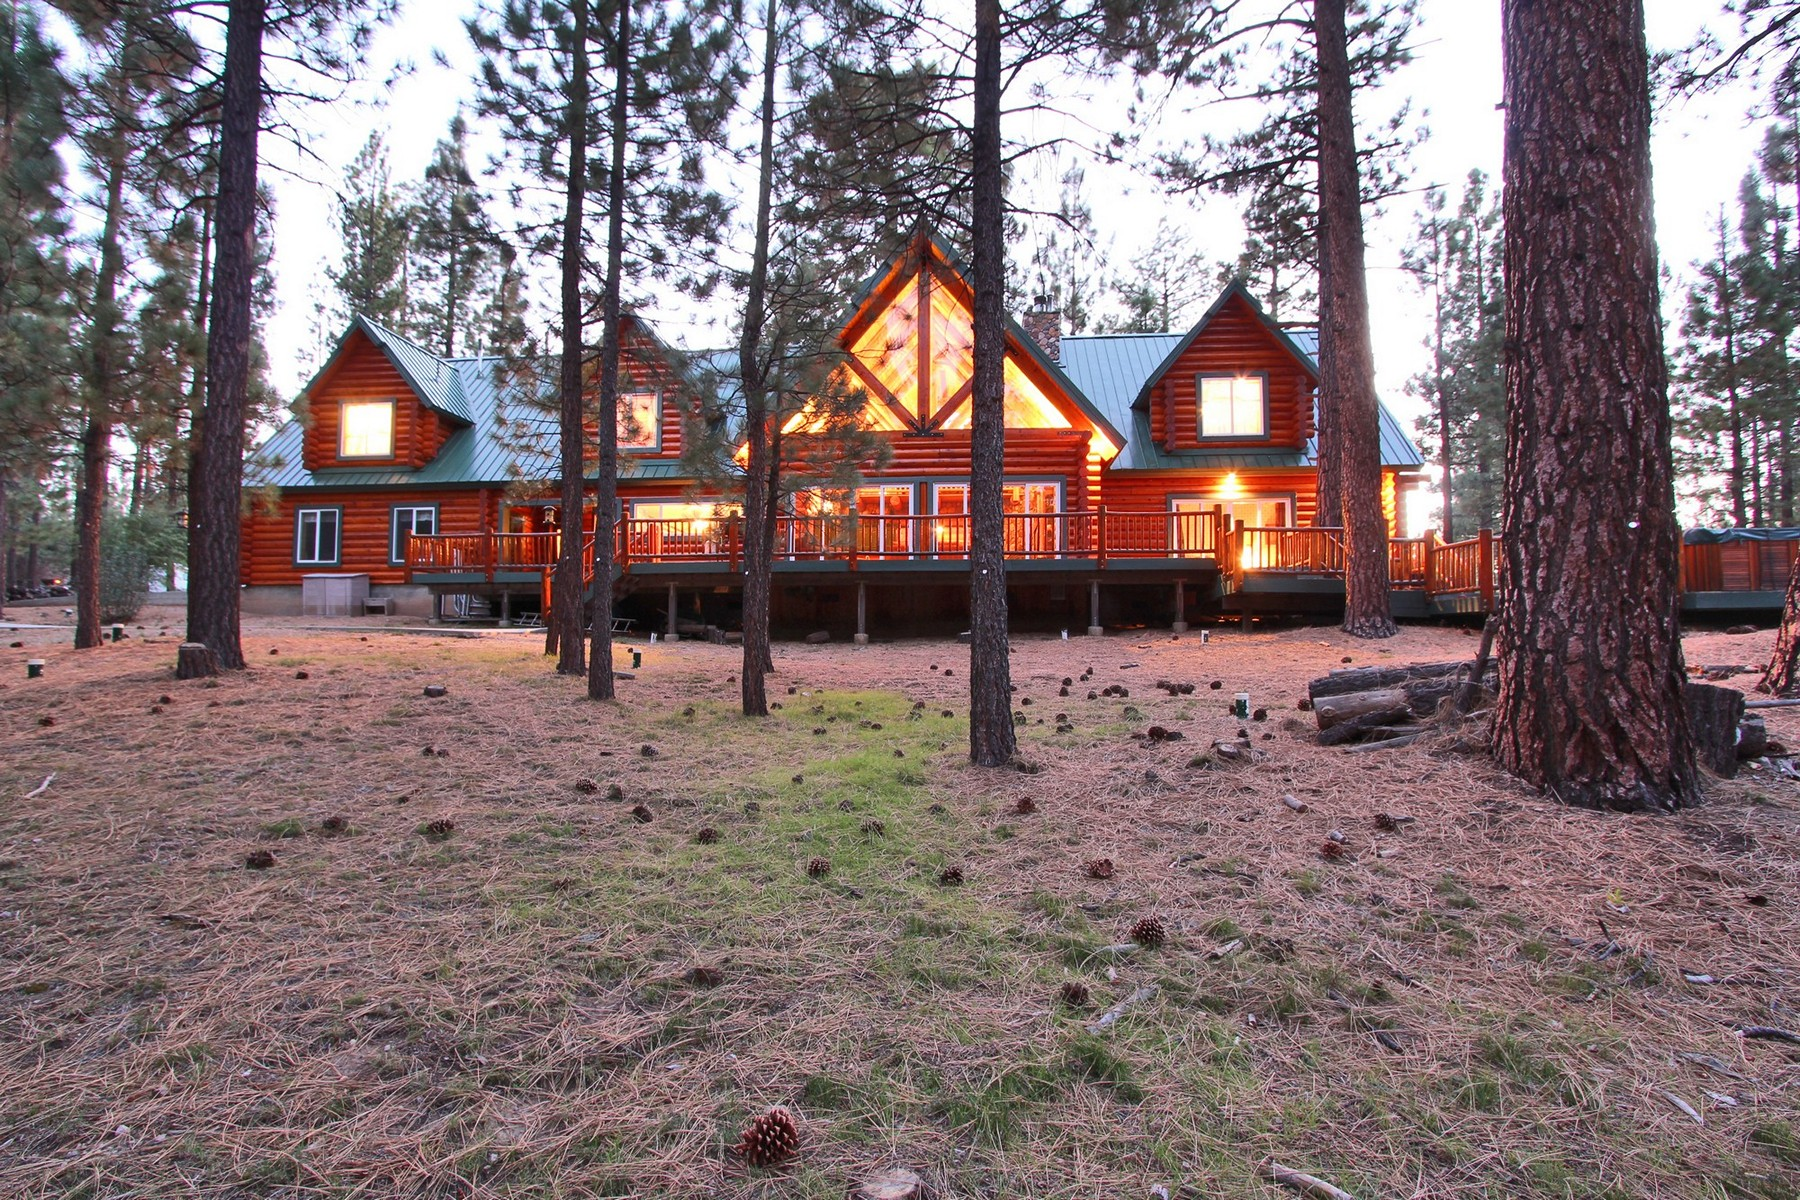 Maison unifamiliale pour l Vente à Timber Lodge 125 N. Starvation Flats Big Bear Lake, Californie, 92315 États-Unis